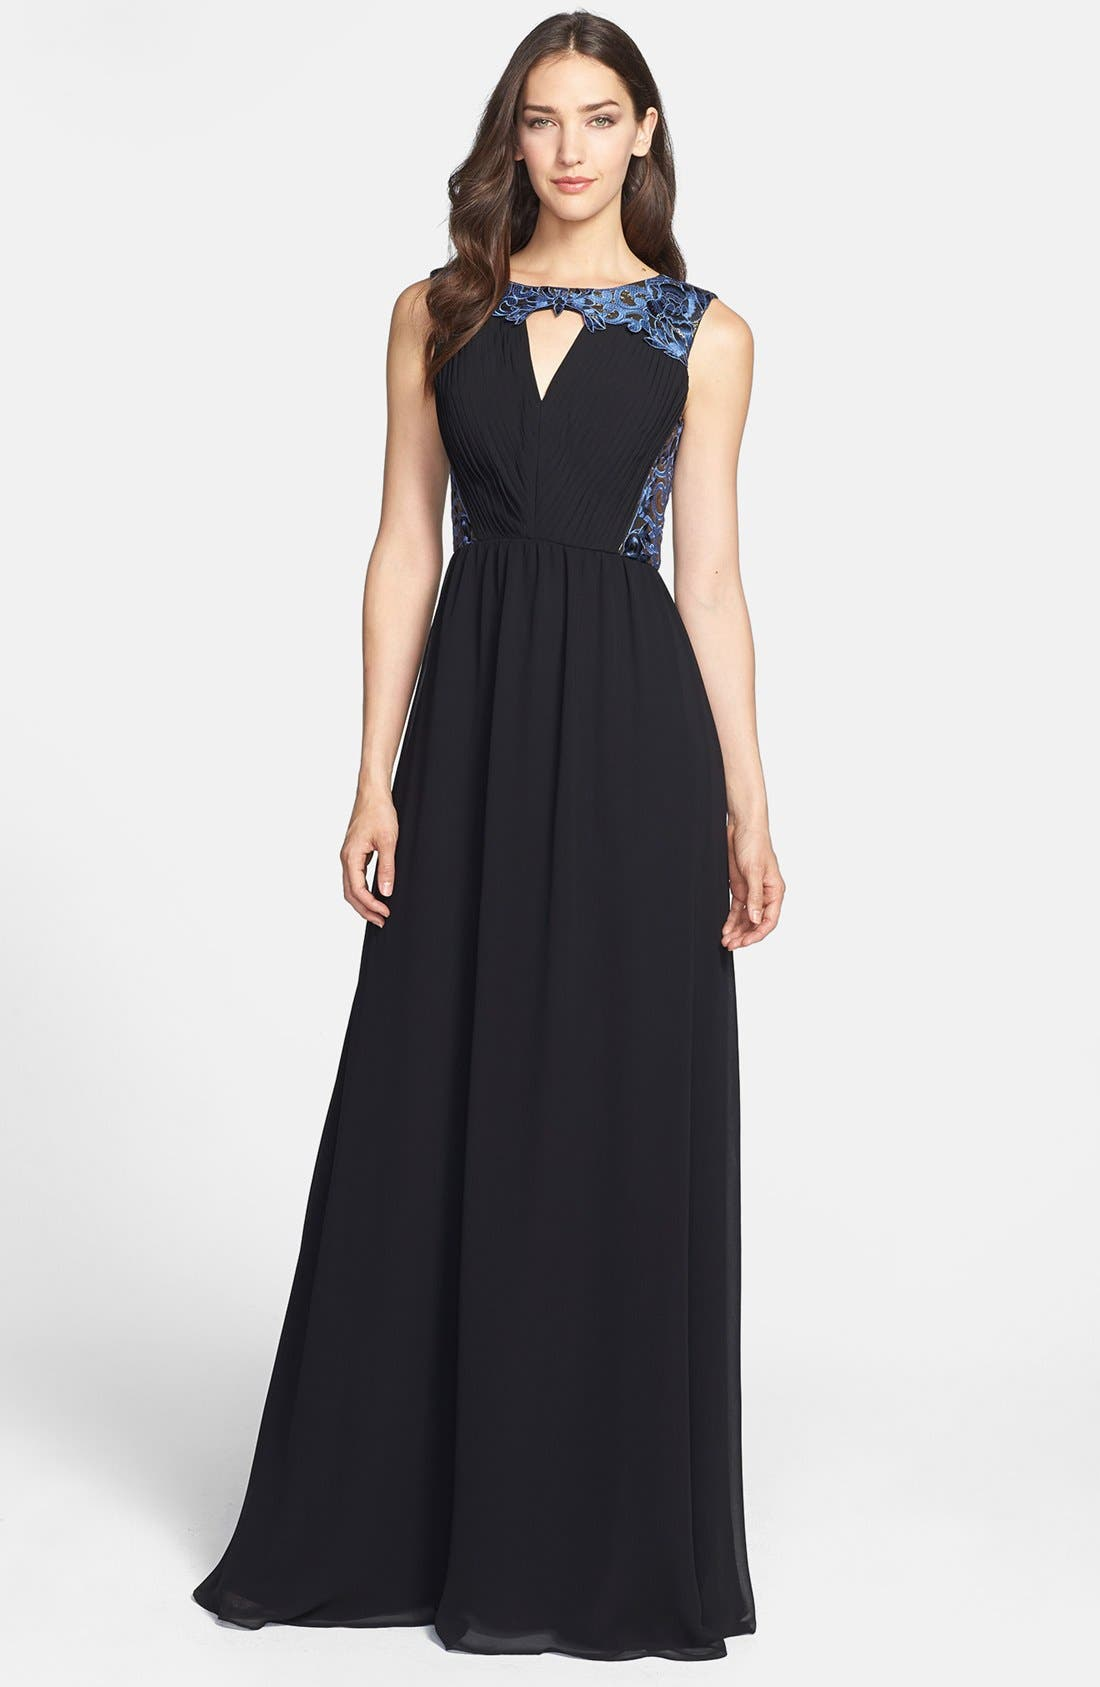 Alternate Image 1 Selected - ERIN erin fetherston 'Clemence' Embroidery Embellished Gown